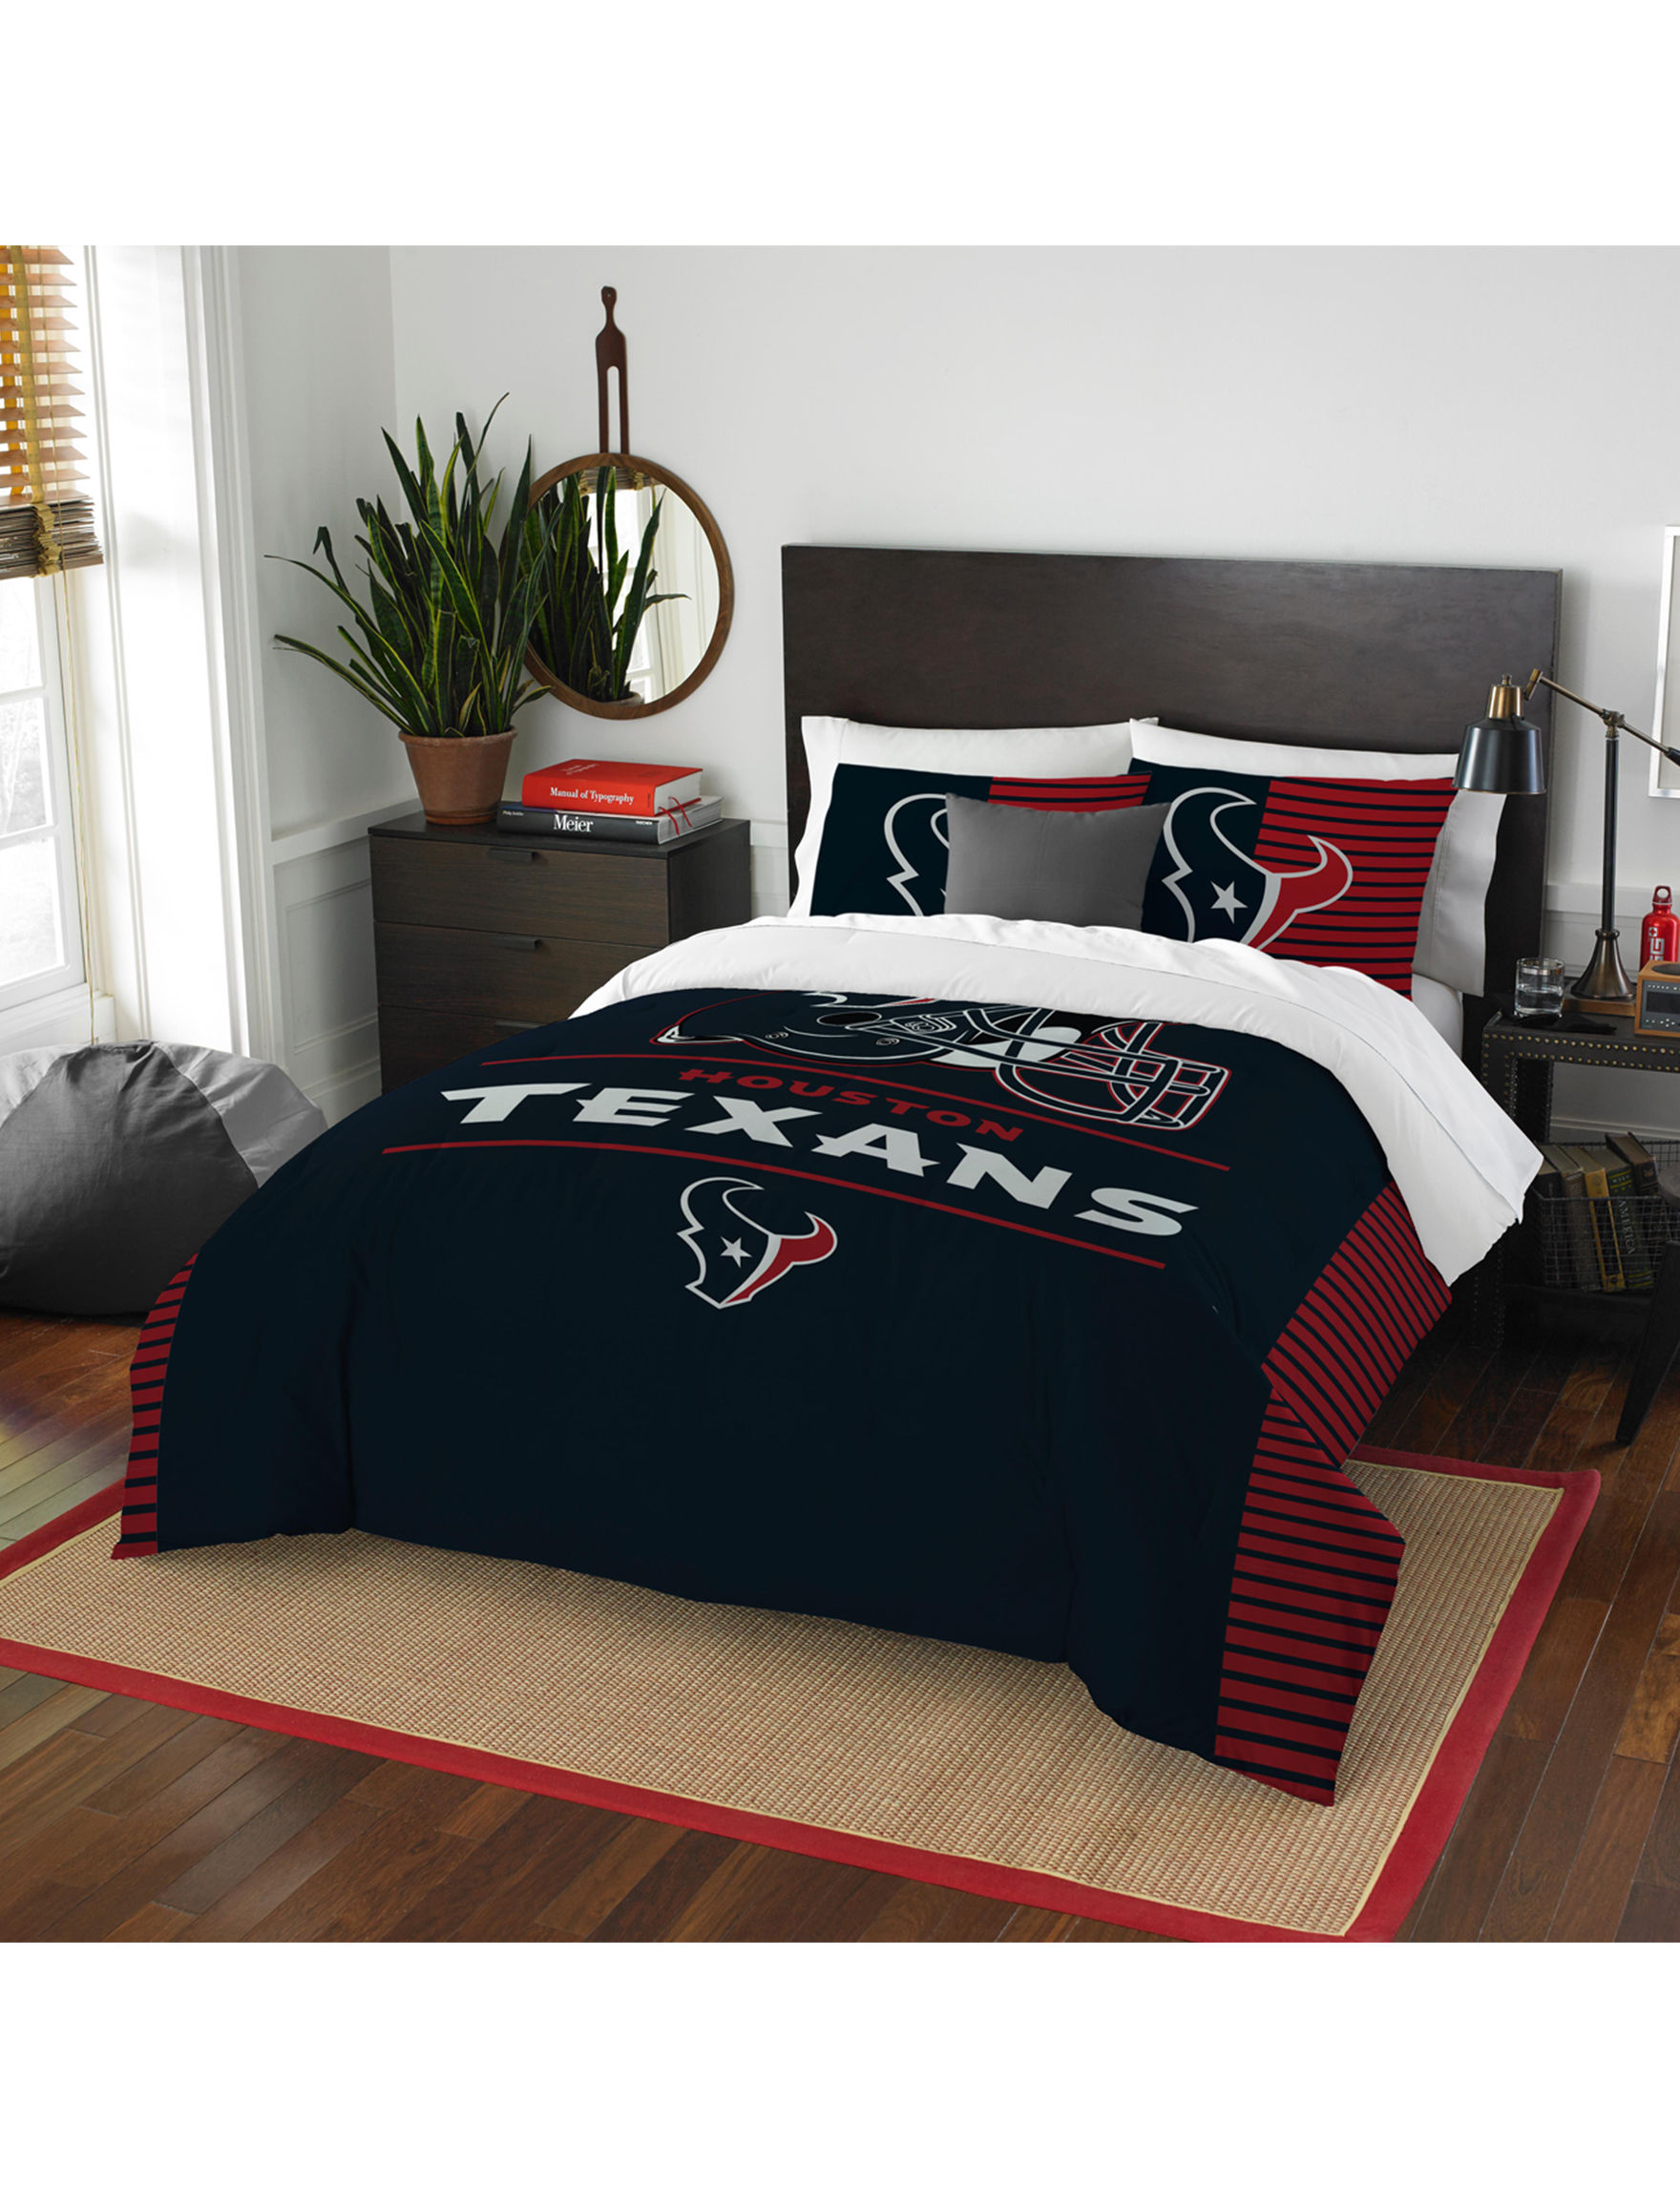 The Northwest Company Navy / Red Comforters & Comforter Sets